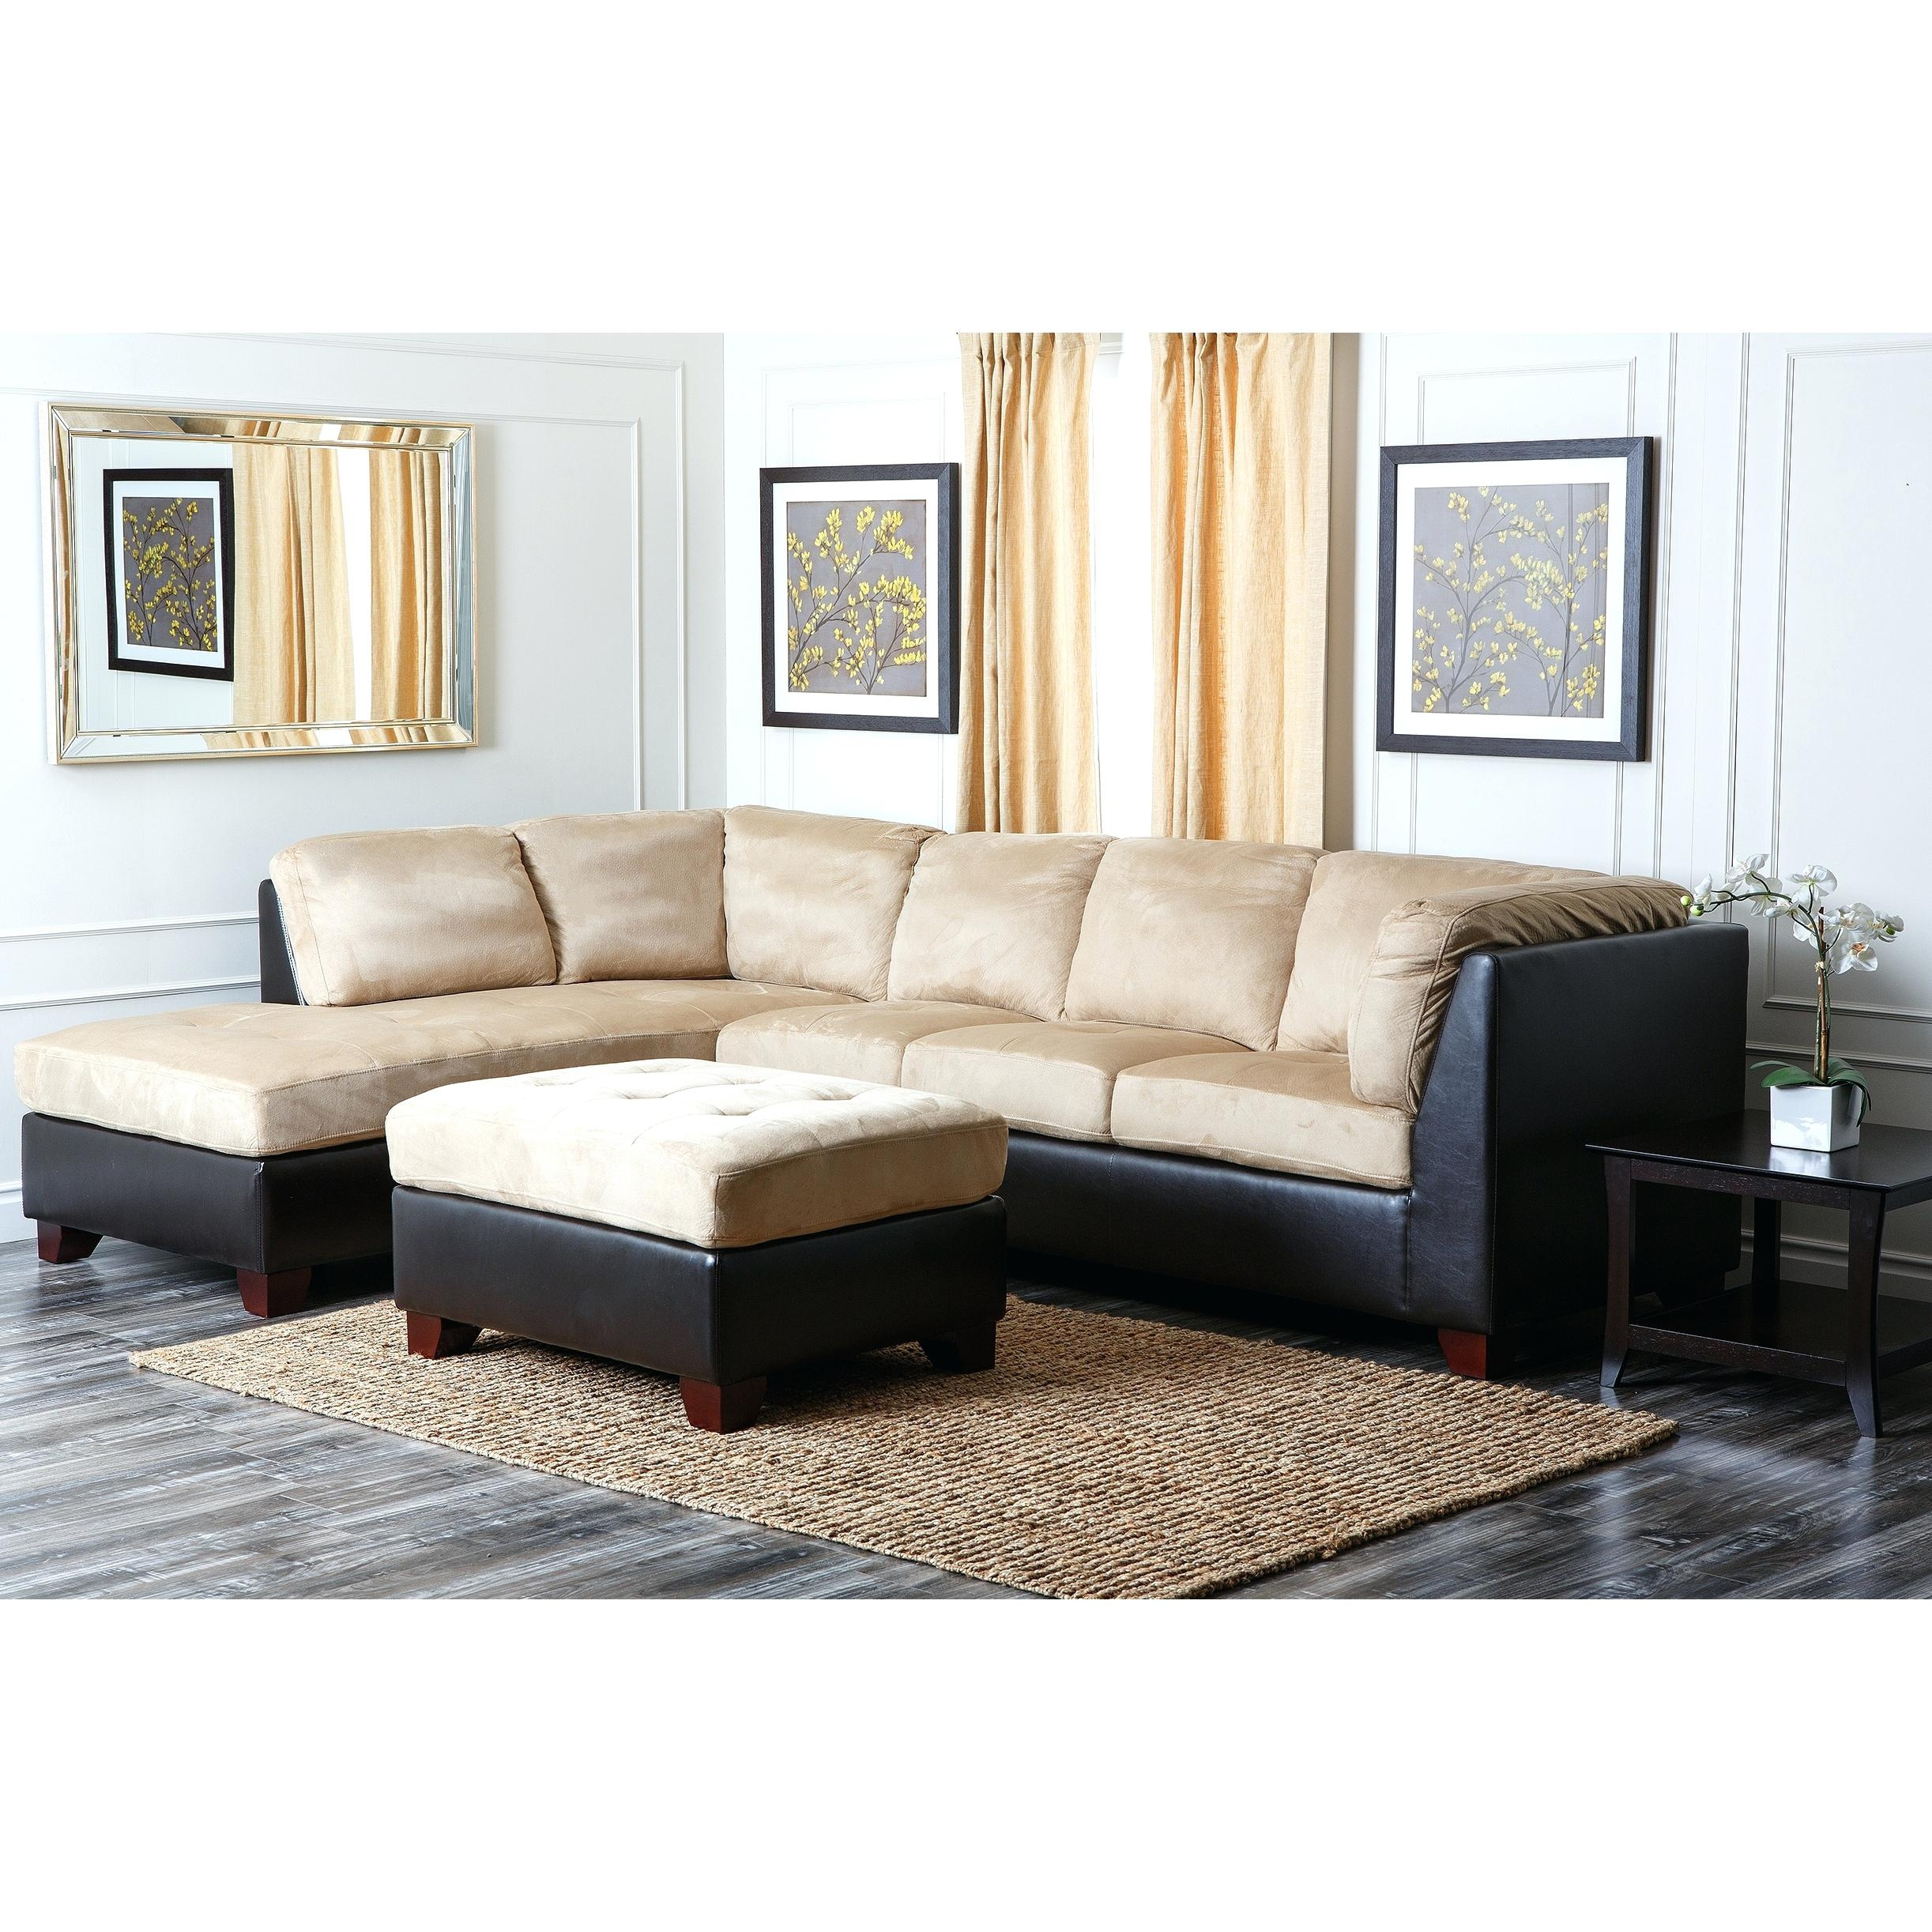 12 ideas of abbyson living charlotte dark brown sectional for Barcelona sectional sofa ottoman in beige